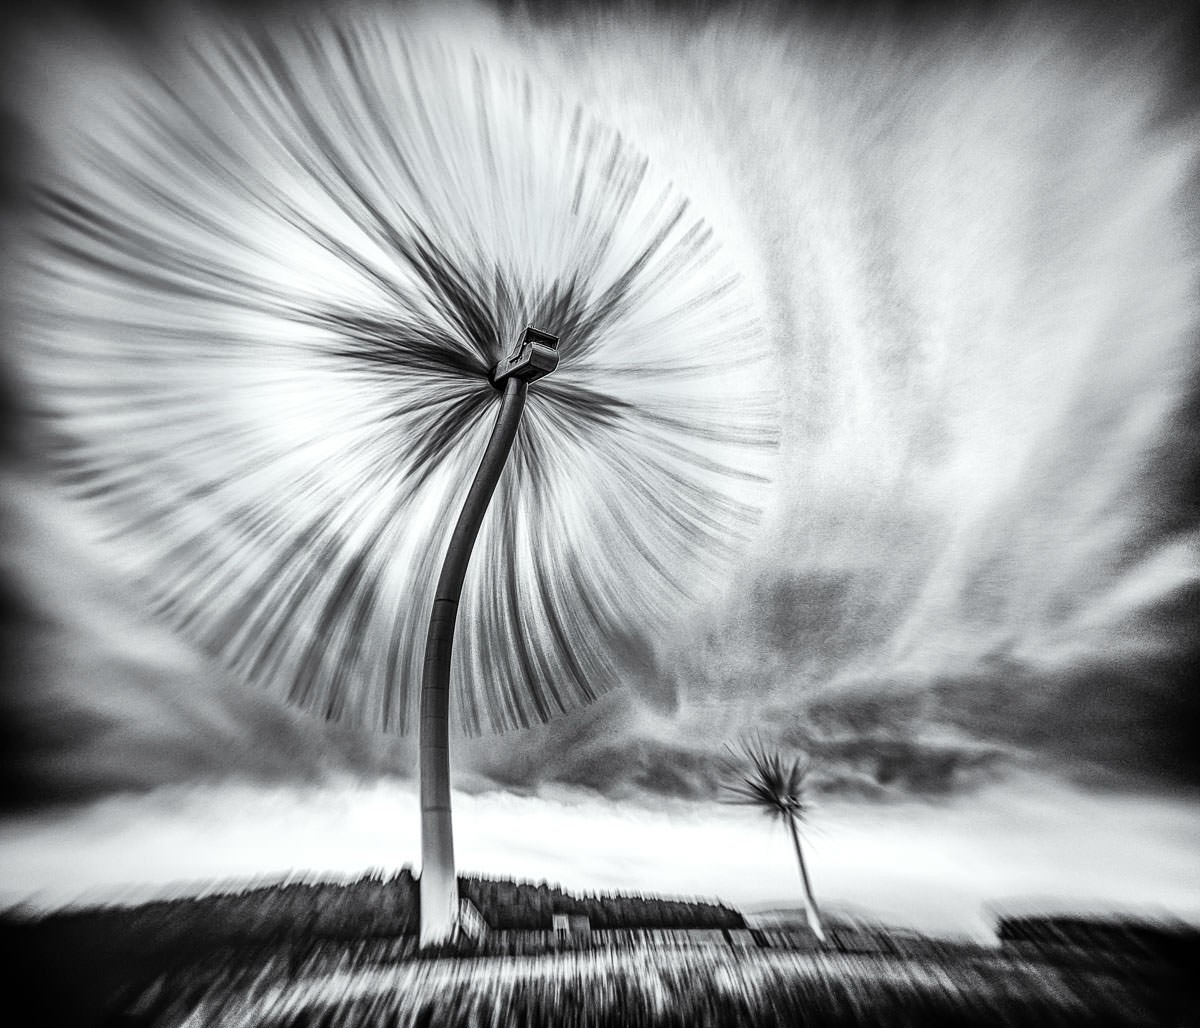 Surreal Image of a Turbo Dandelion Wind Farm